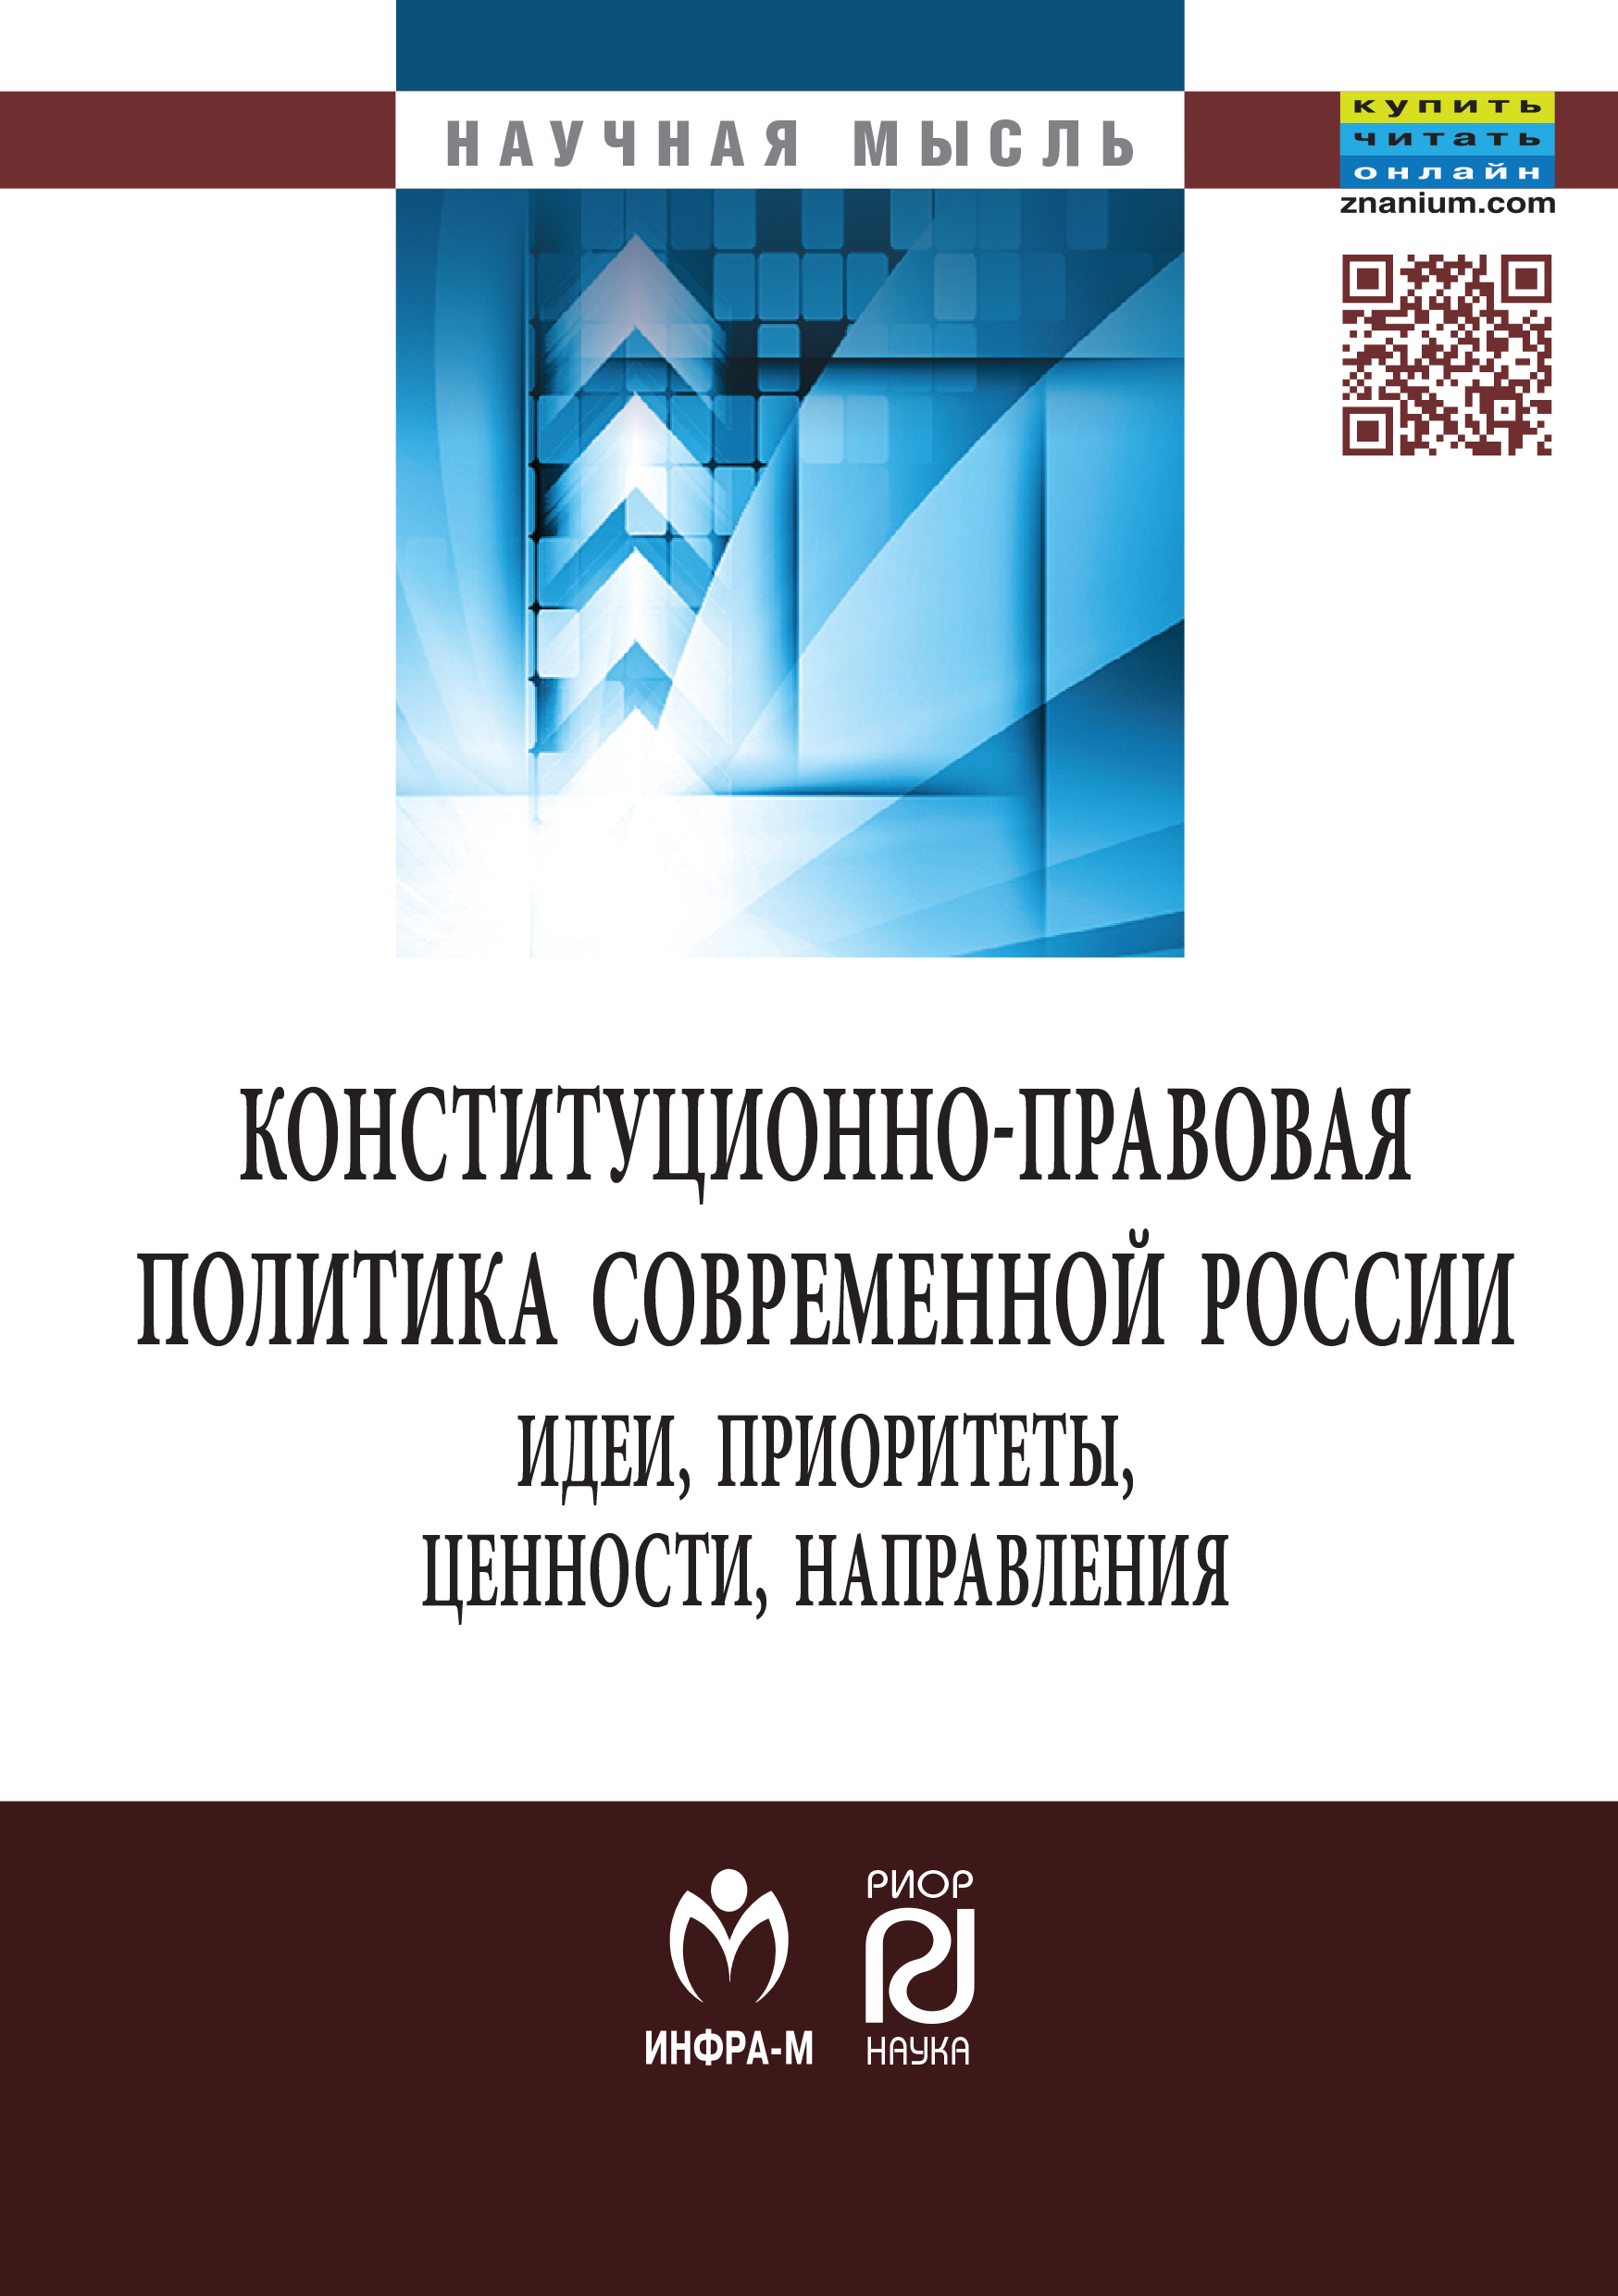 Constitutional policy of law of modern Russia: ideas, priorities, values, directions